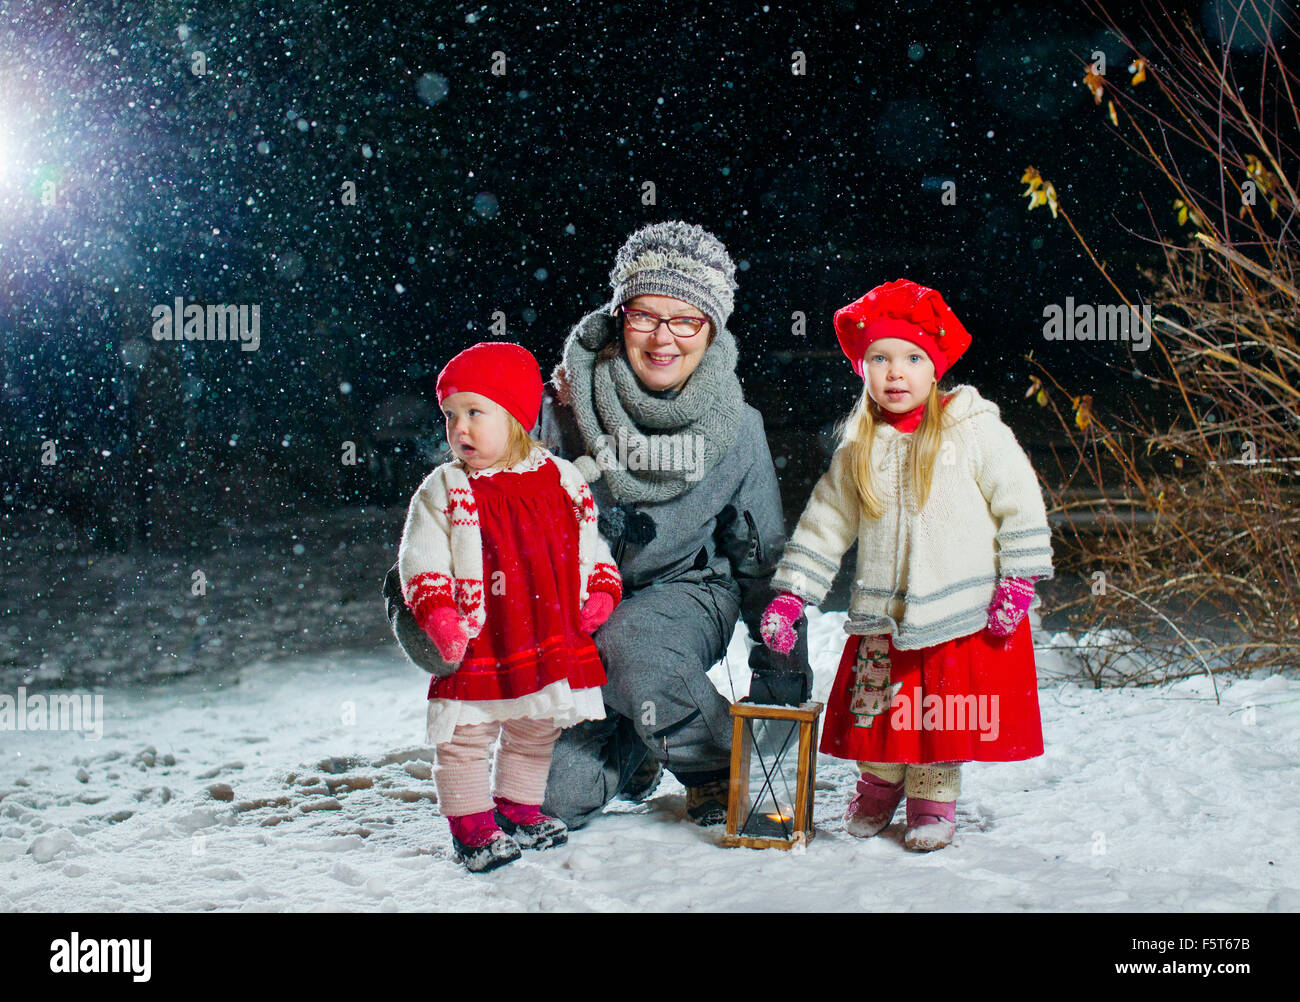 Finland, Portrait of grandmother with granddaughters (12-17 months, 2-3) in backyard at night Stock Photo